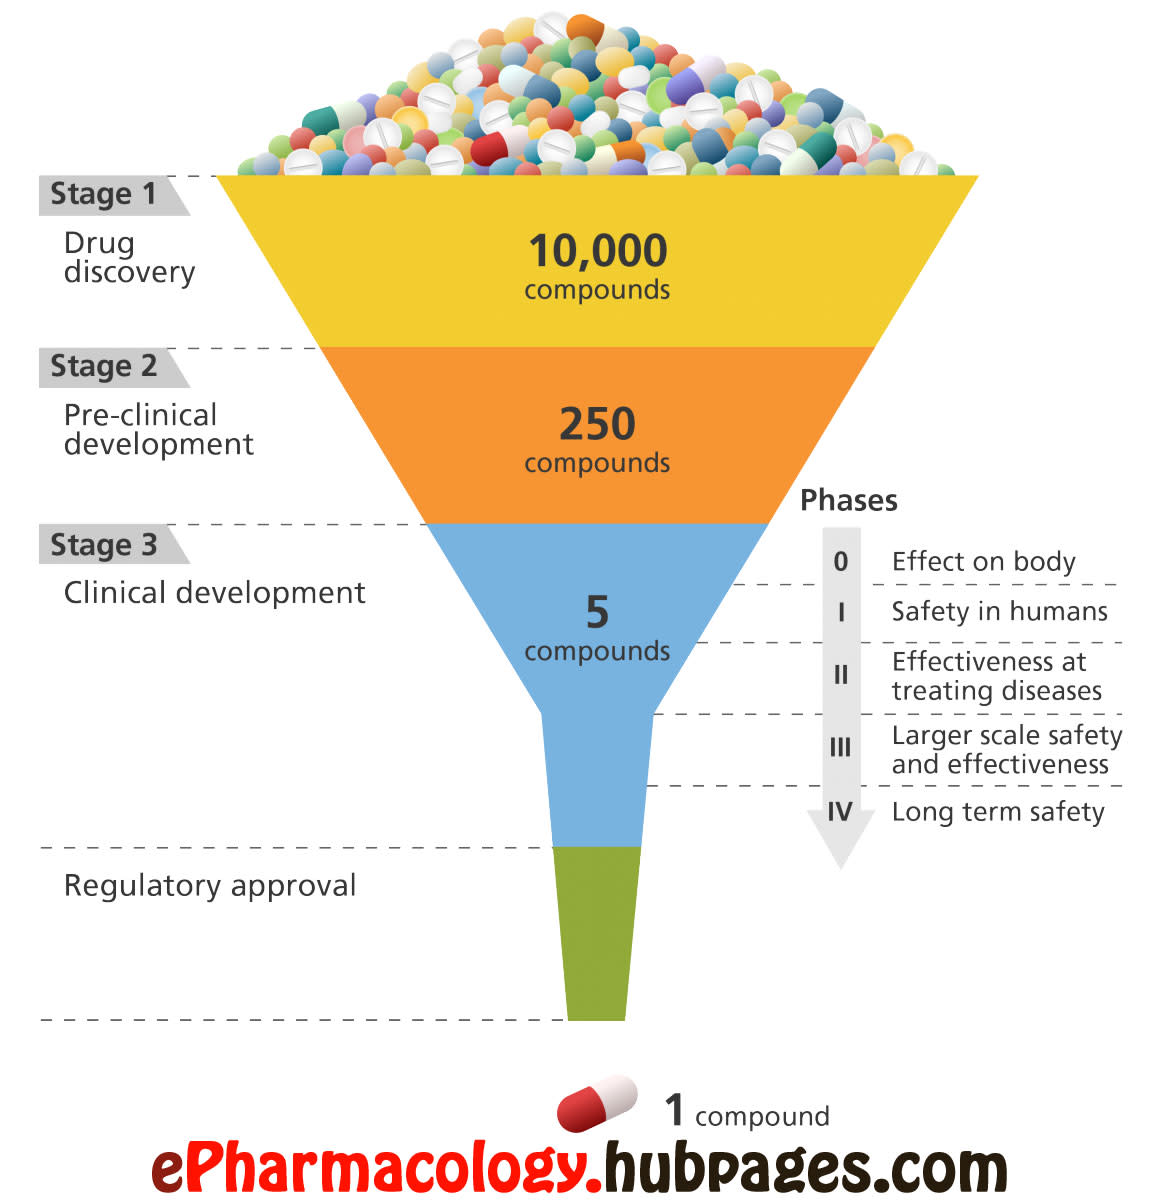 The drug development process in a nut-shell